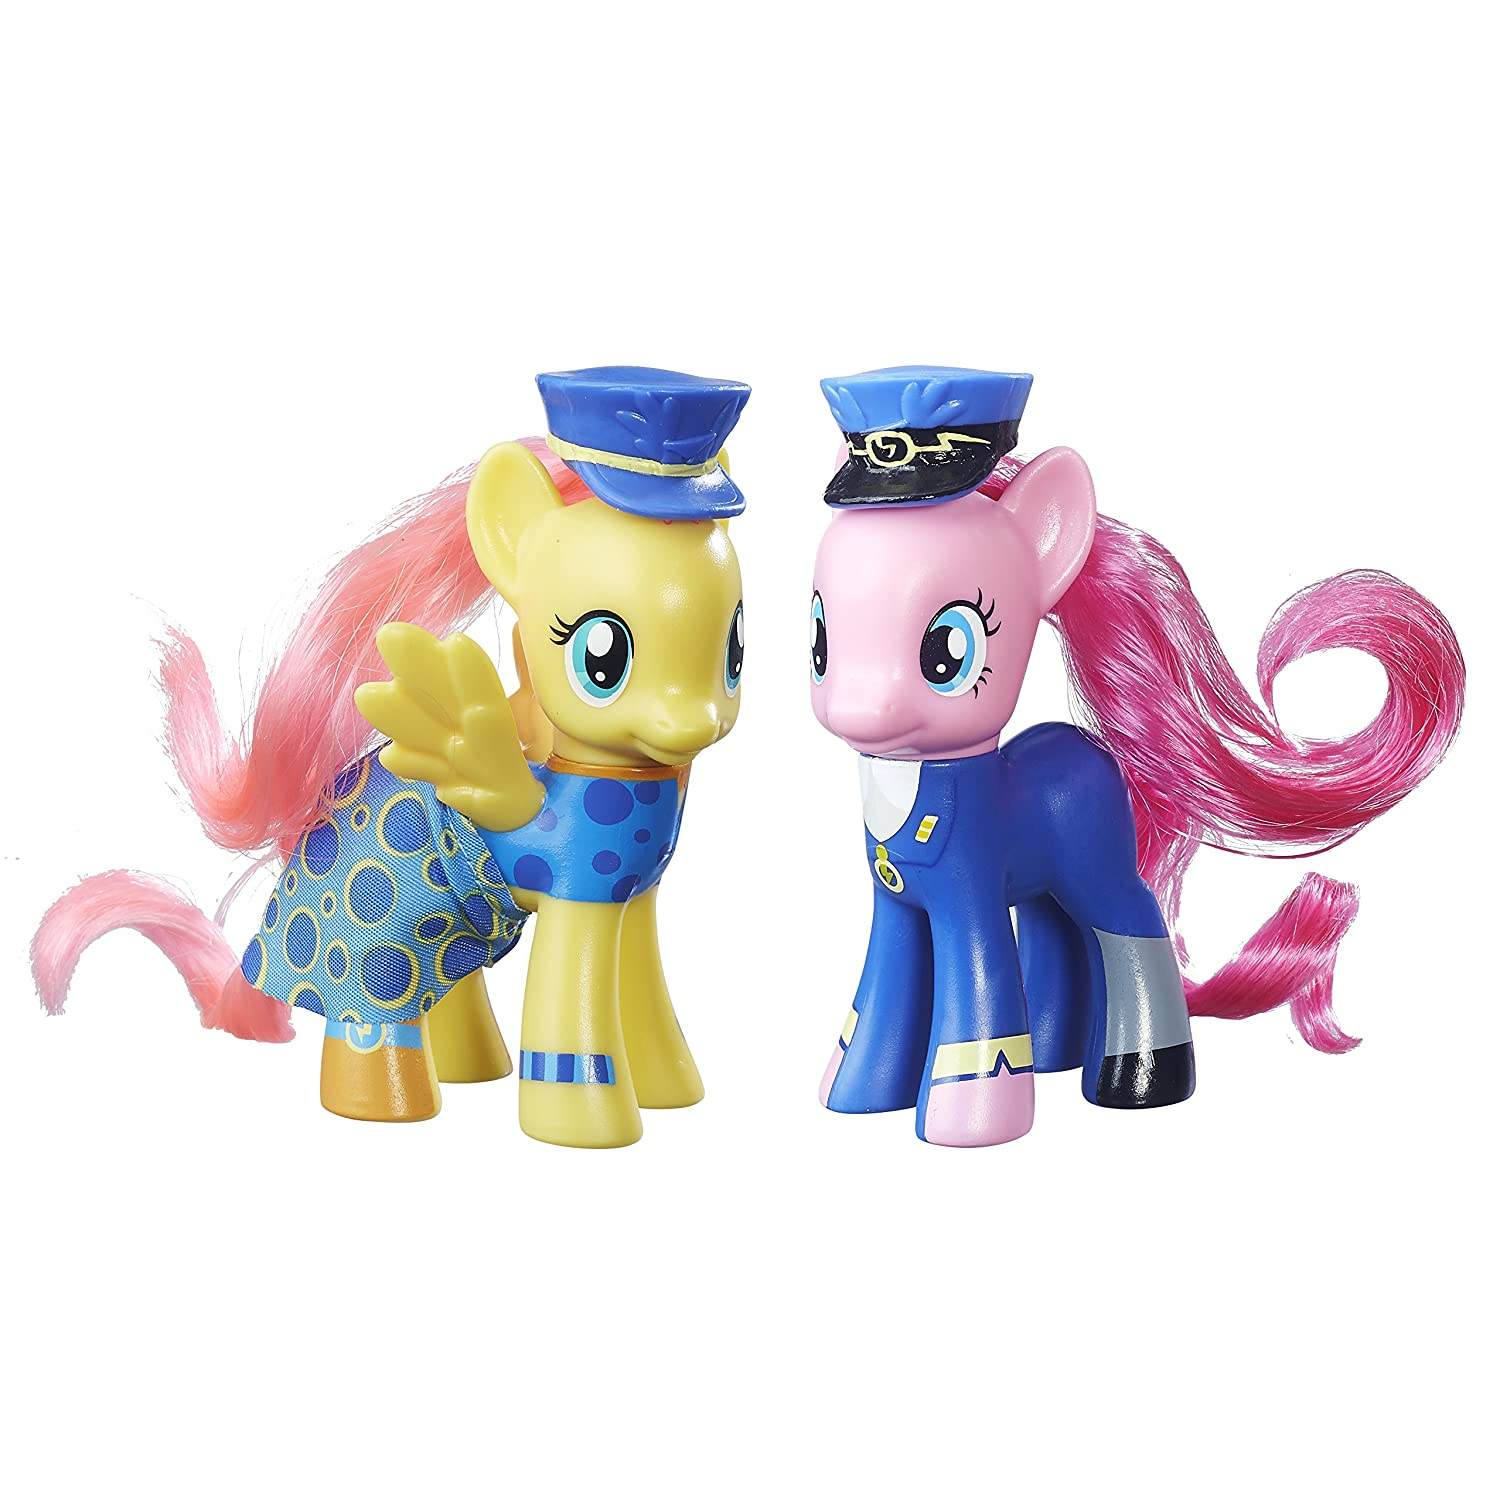 My Little Pony Toys : My little pony wonderbolt fluttershy and pinkie pie toy